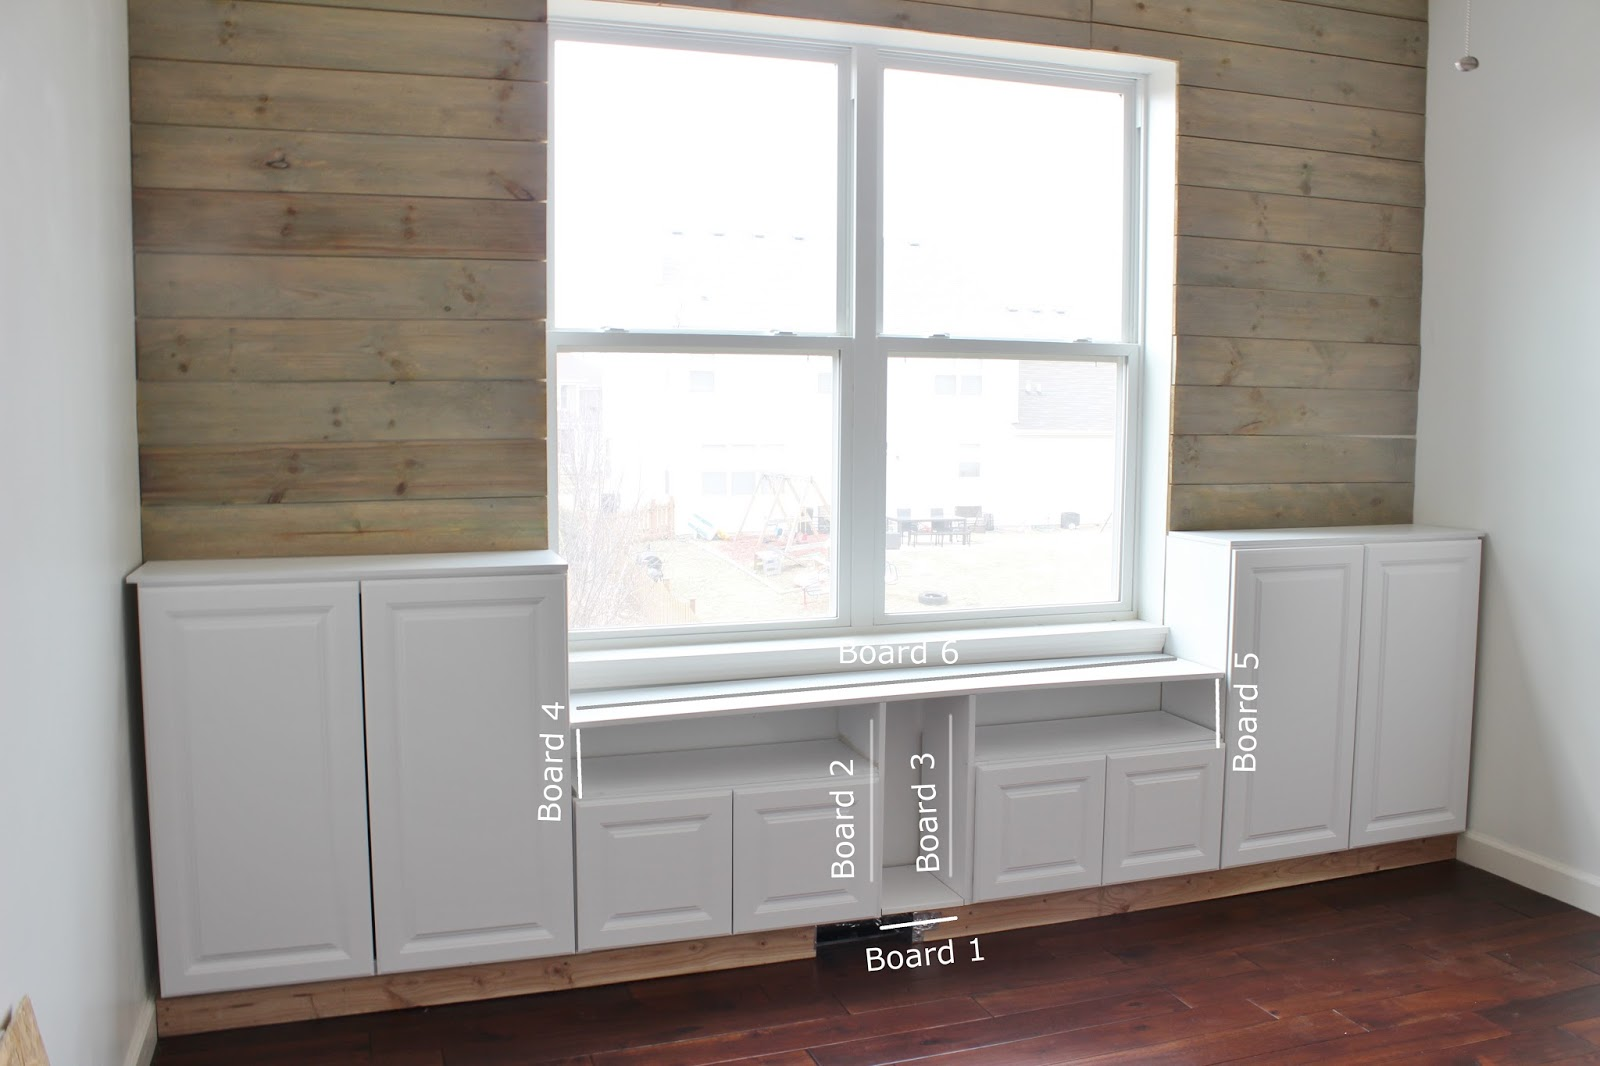 Playroom Makeover With Built In Cabinets For Storage | Remodelaholic |  Bloglovinu0027